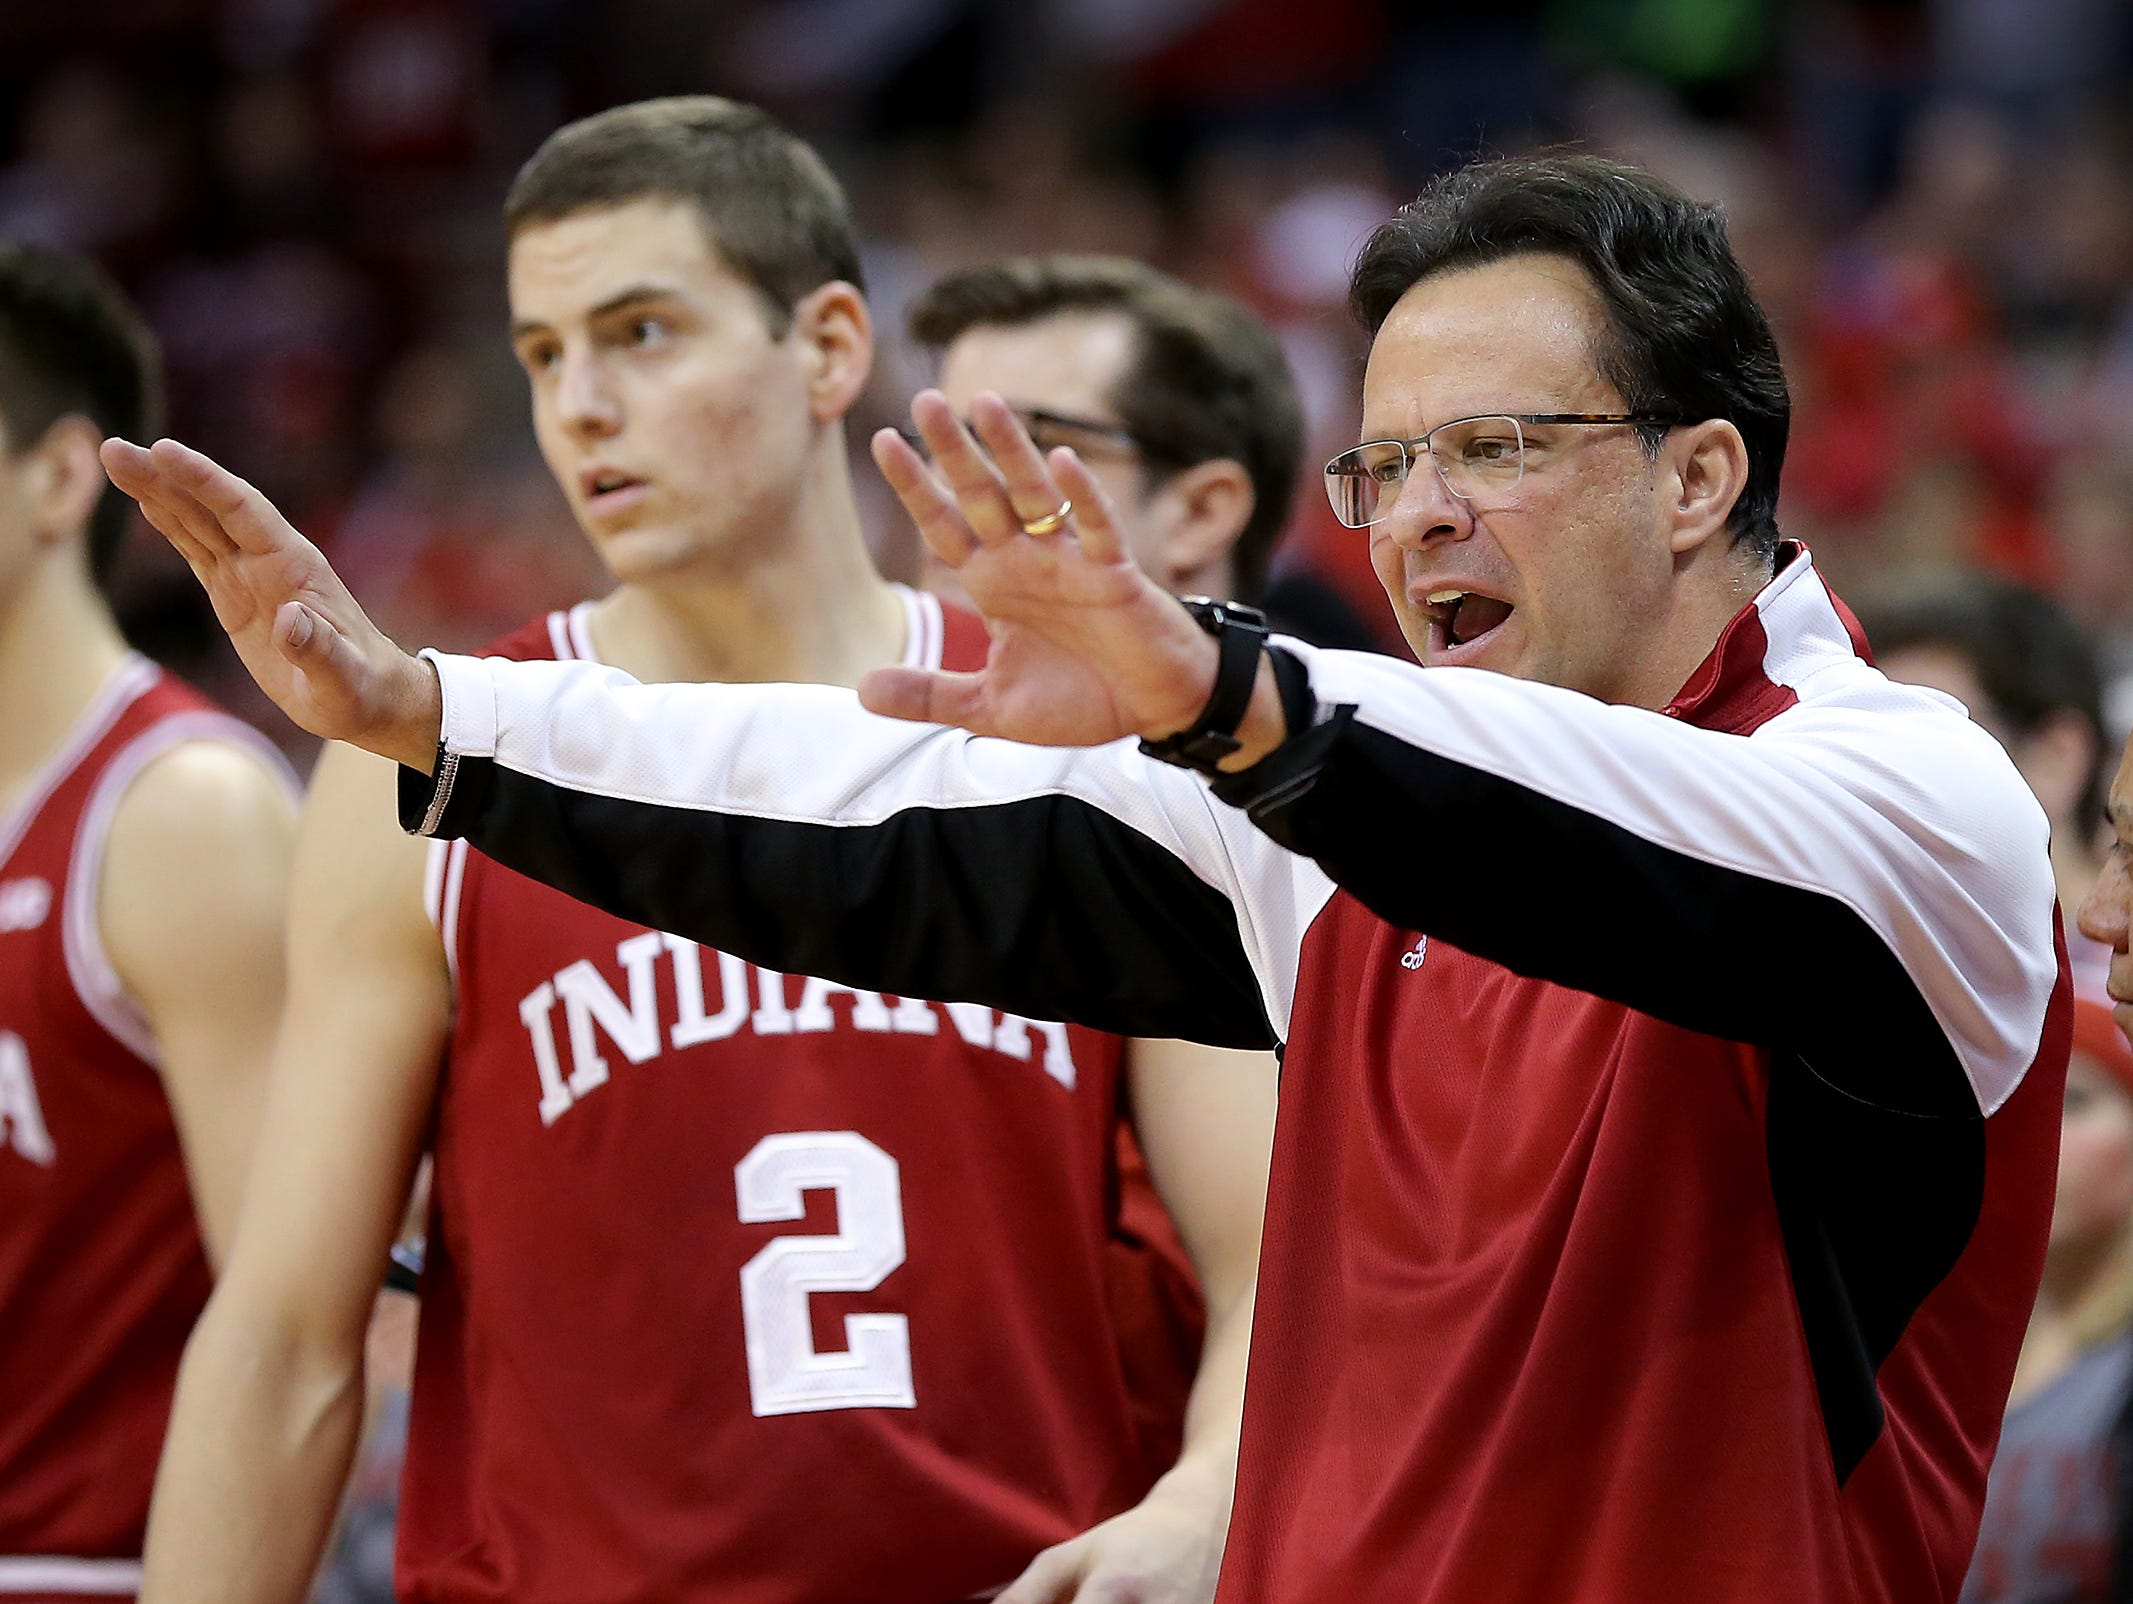 Indiana Hoosiers head coach Tom Crean has always been considered a strong recruiter.